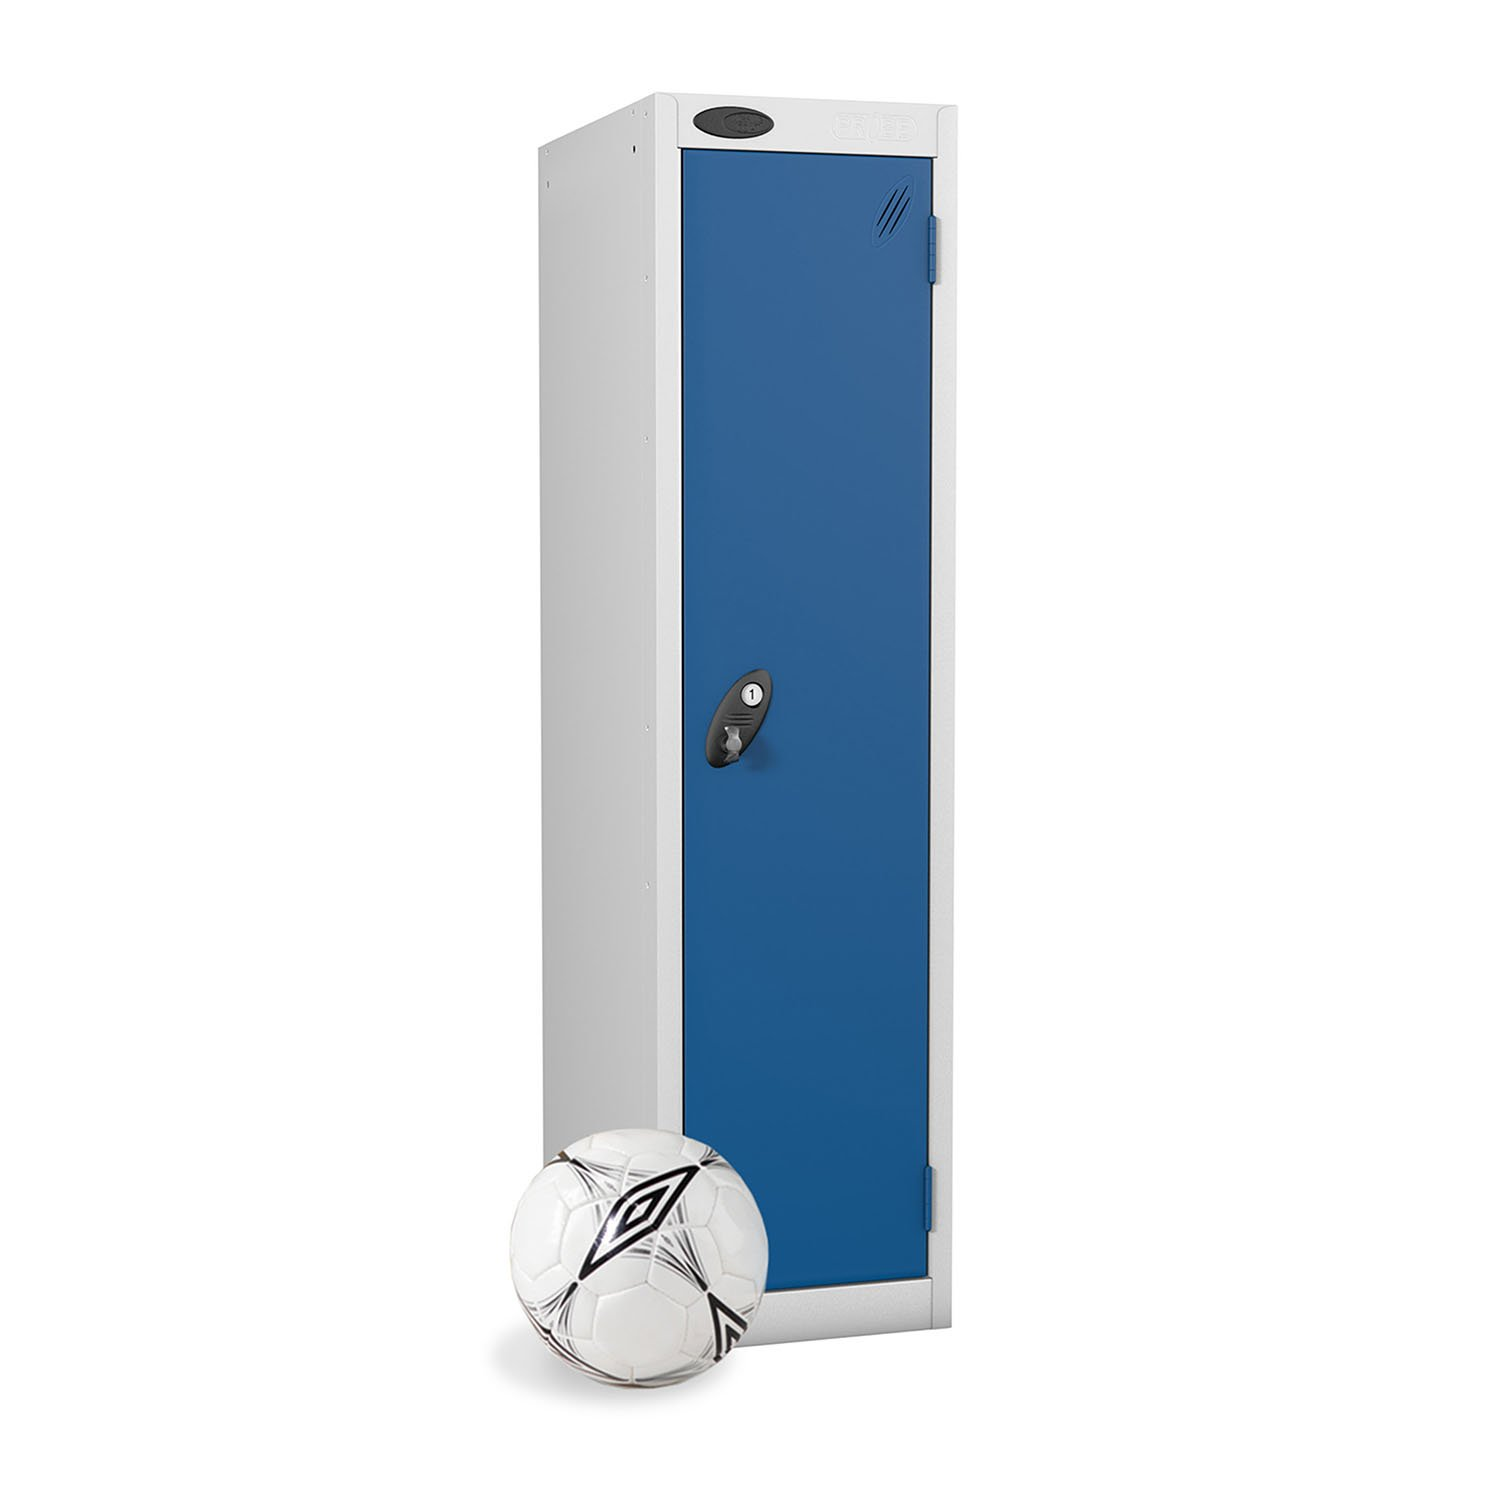 Probe 1 door low locker in blue colour